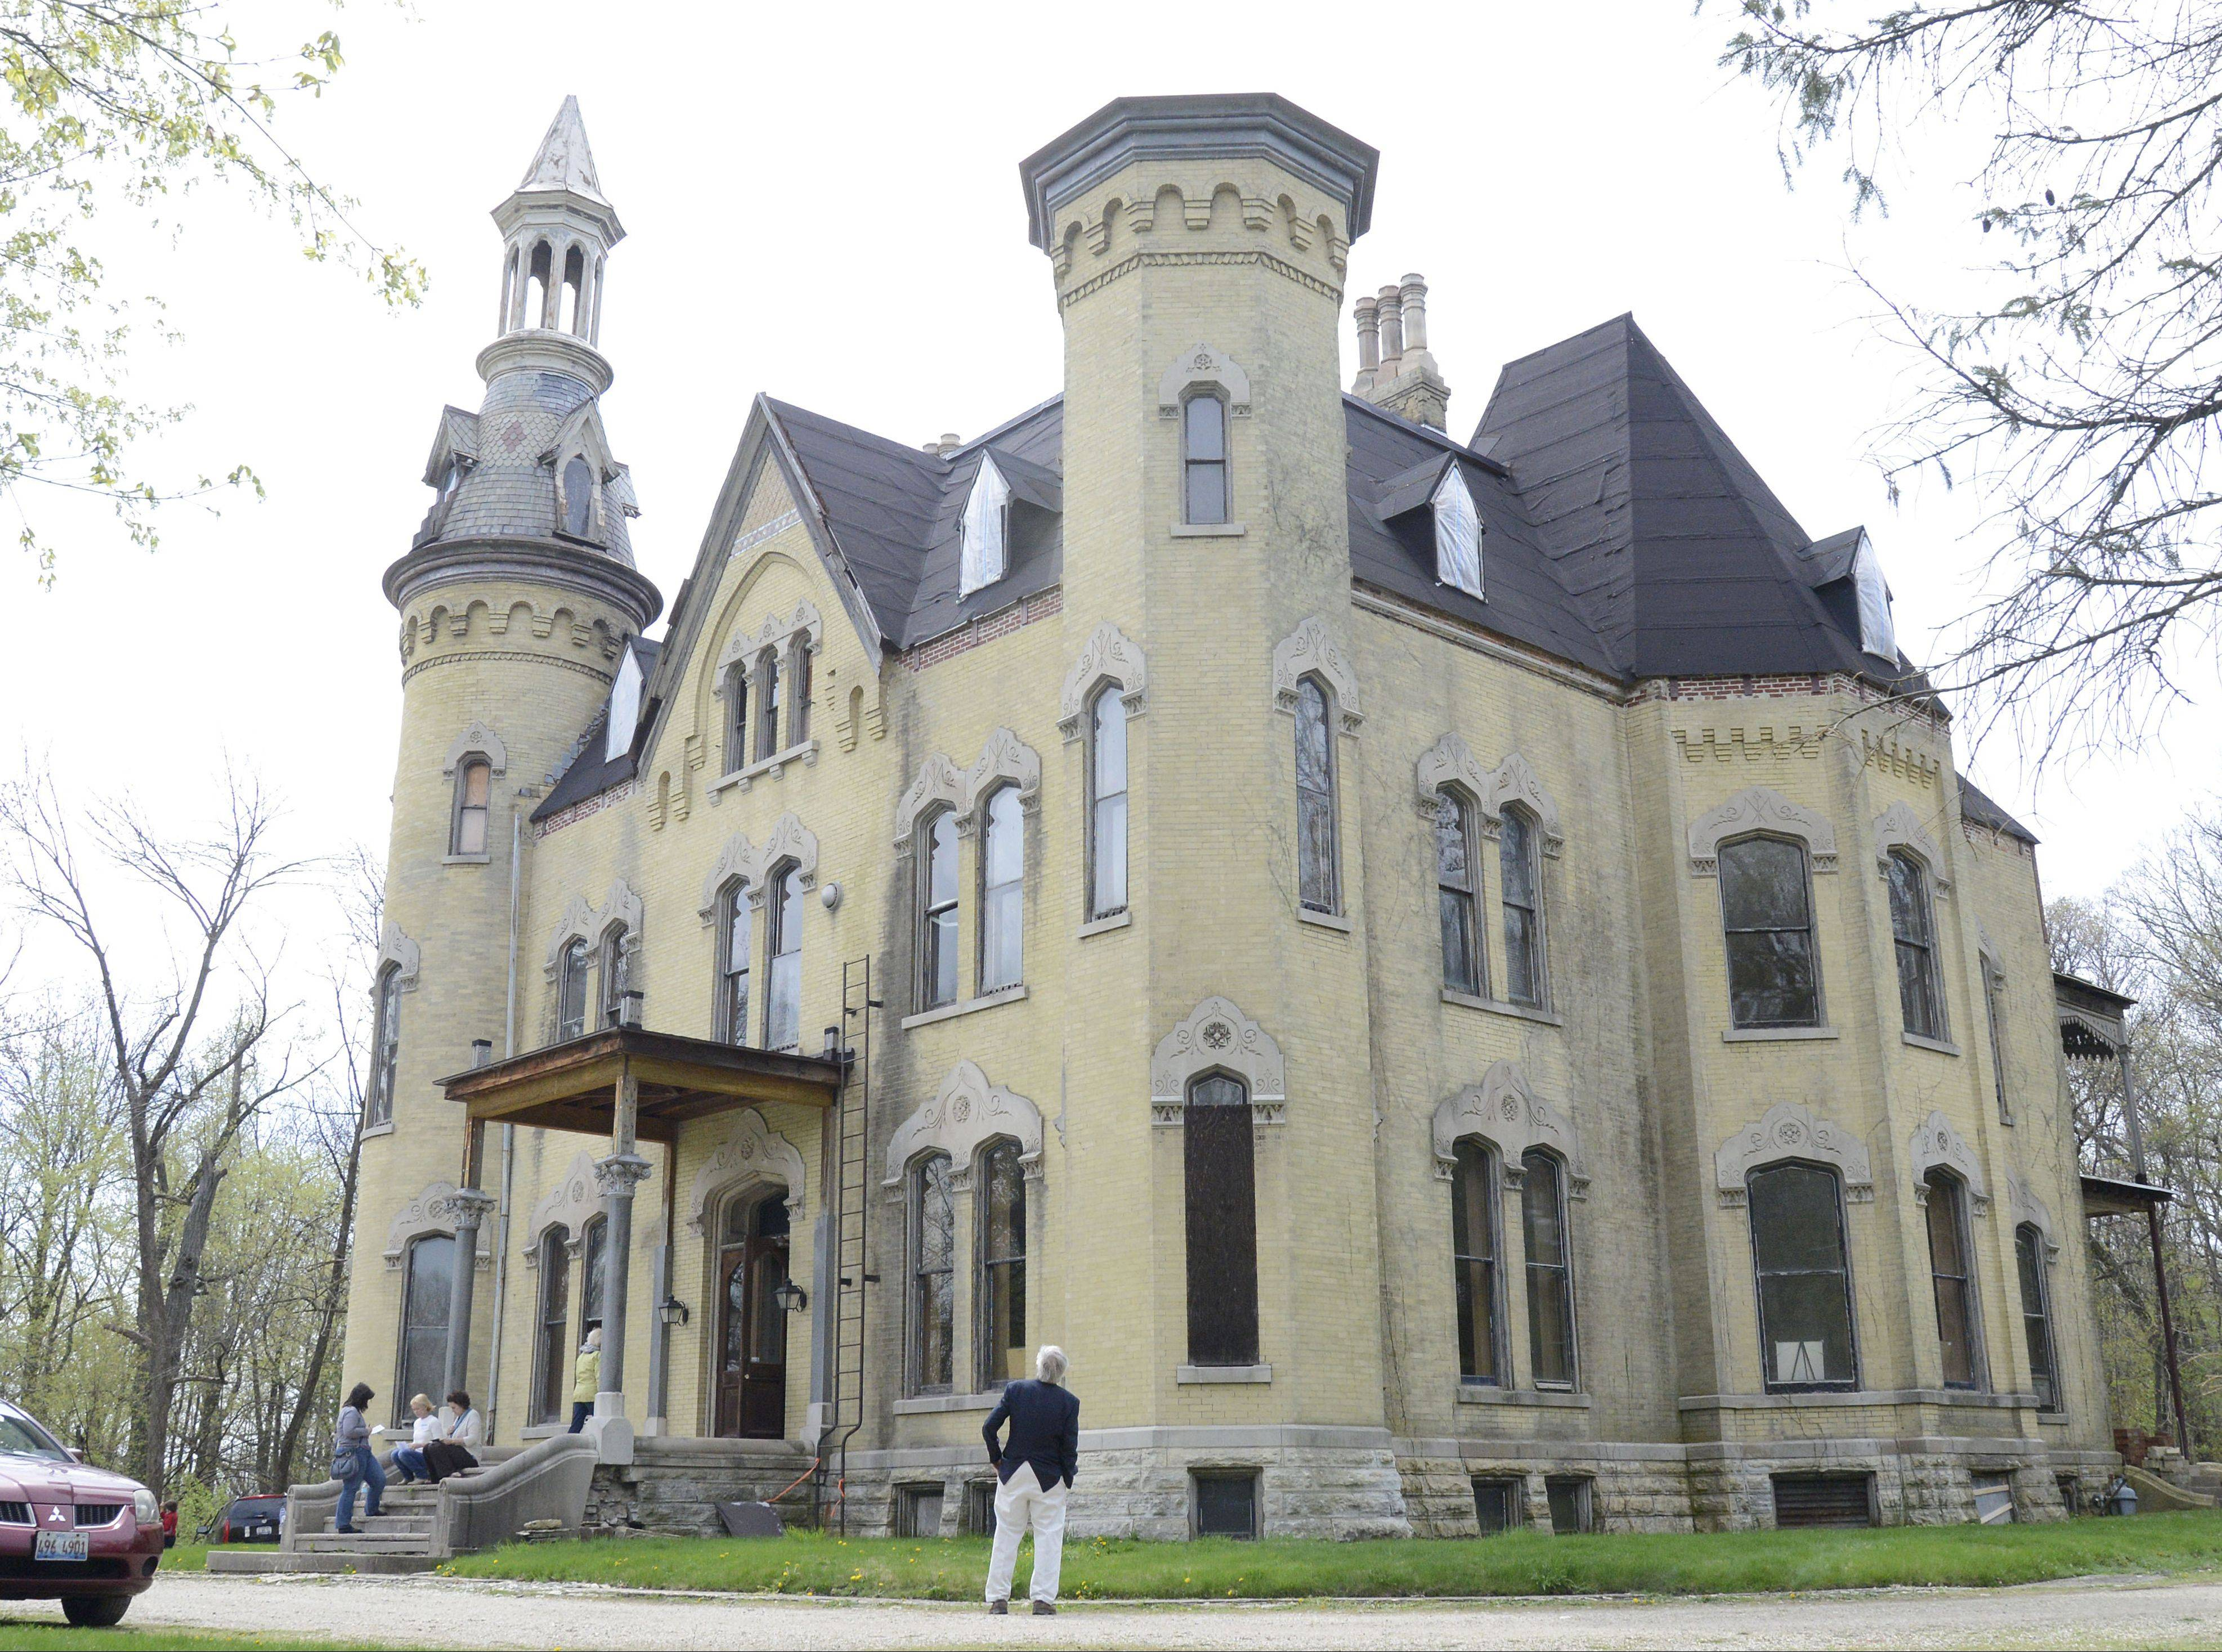 Dunham Castle in Wayne is open for tours from 11 a.m. to 3 p.m. today.